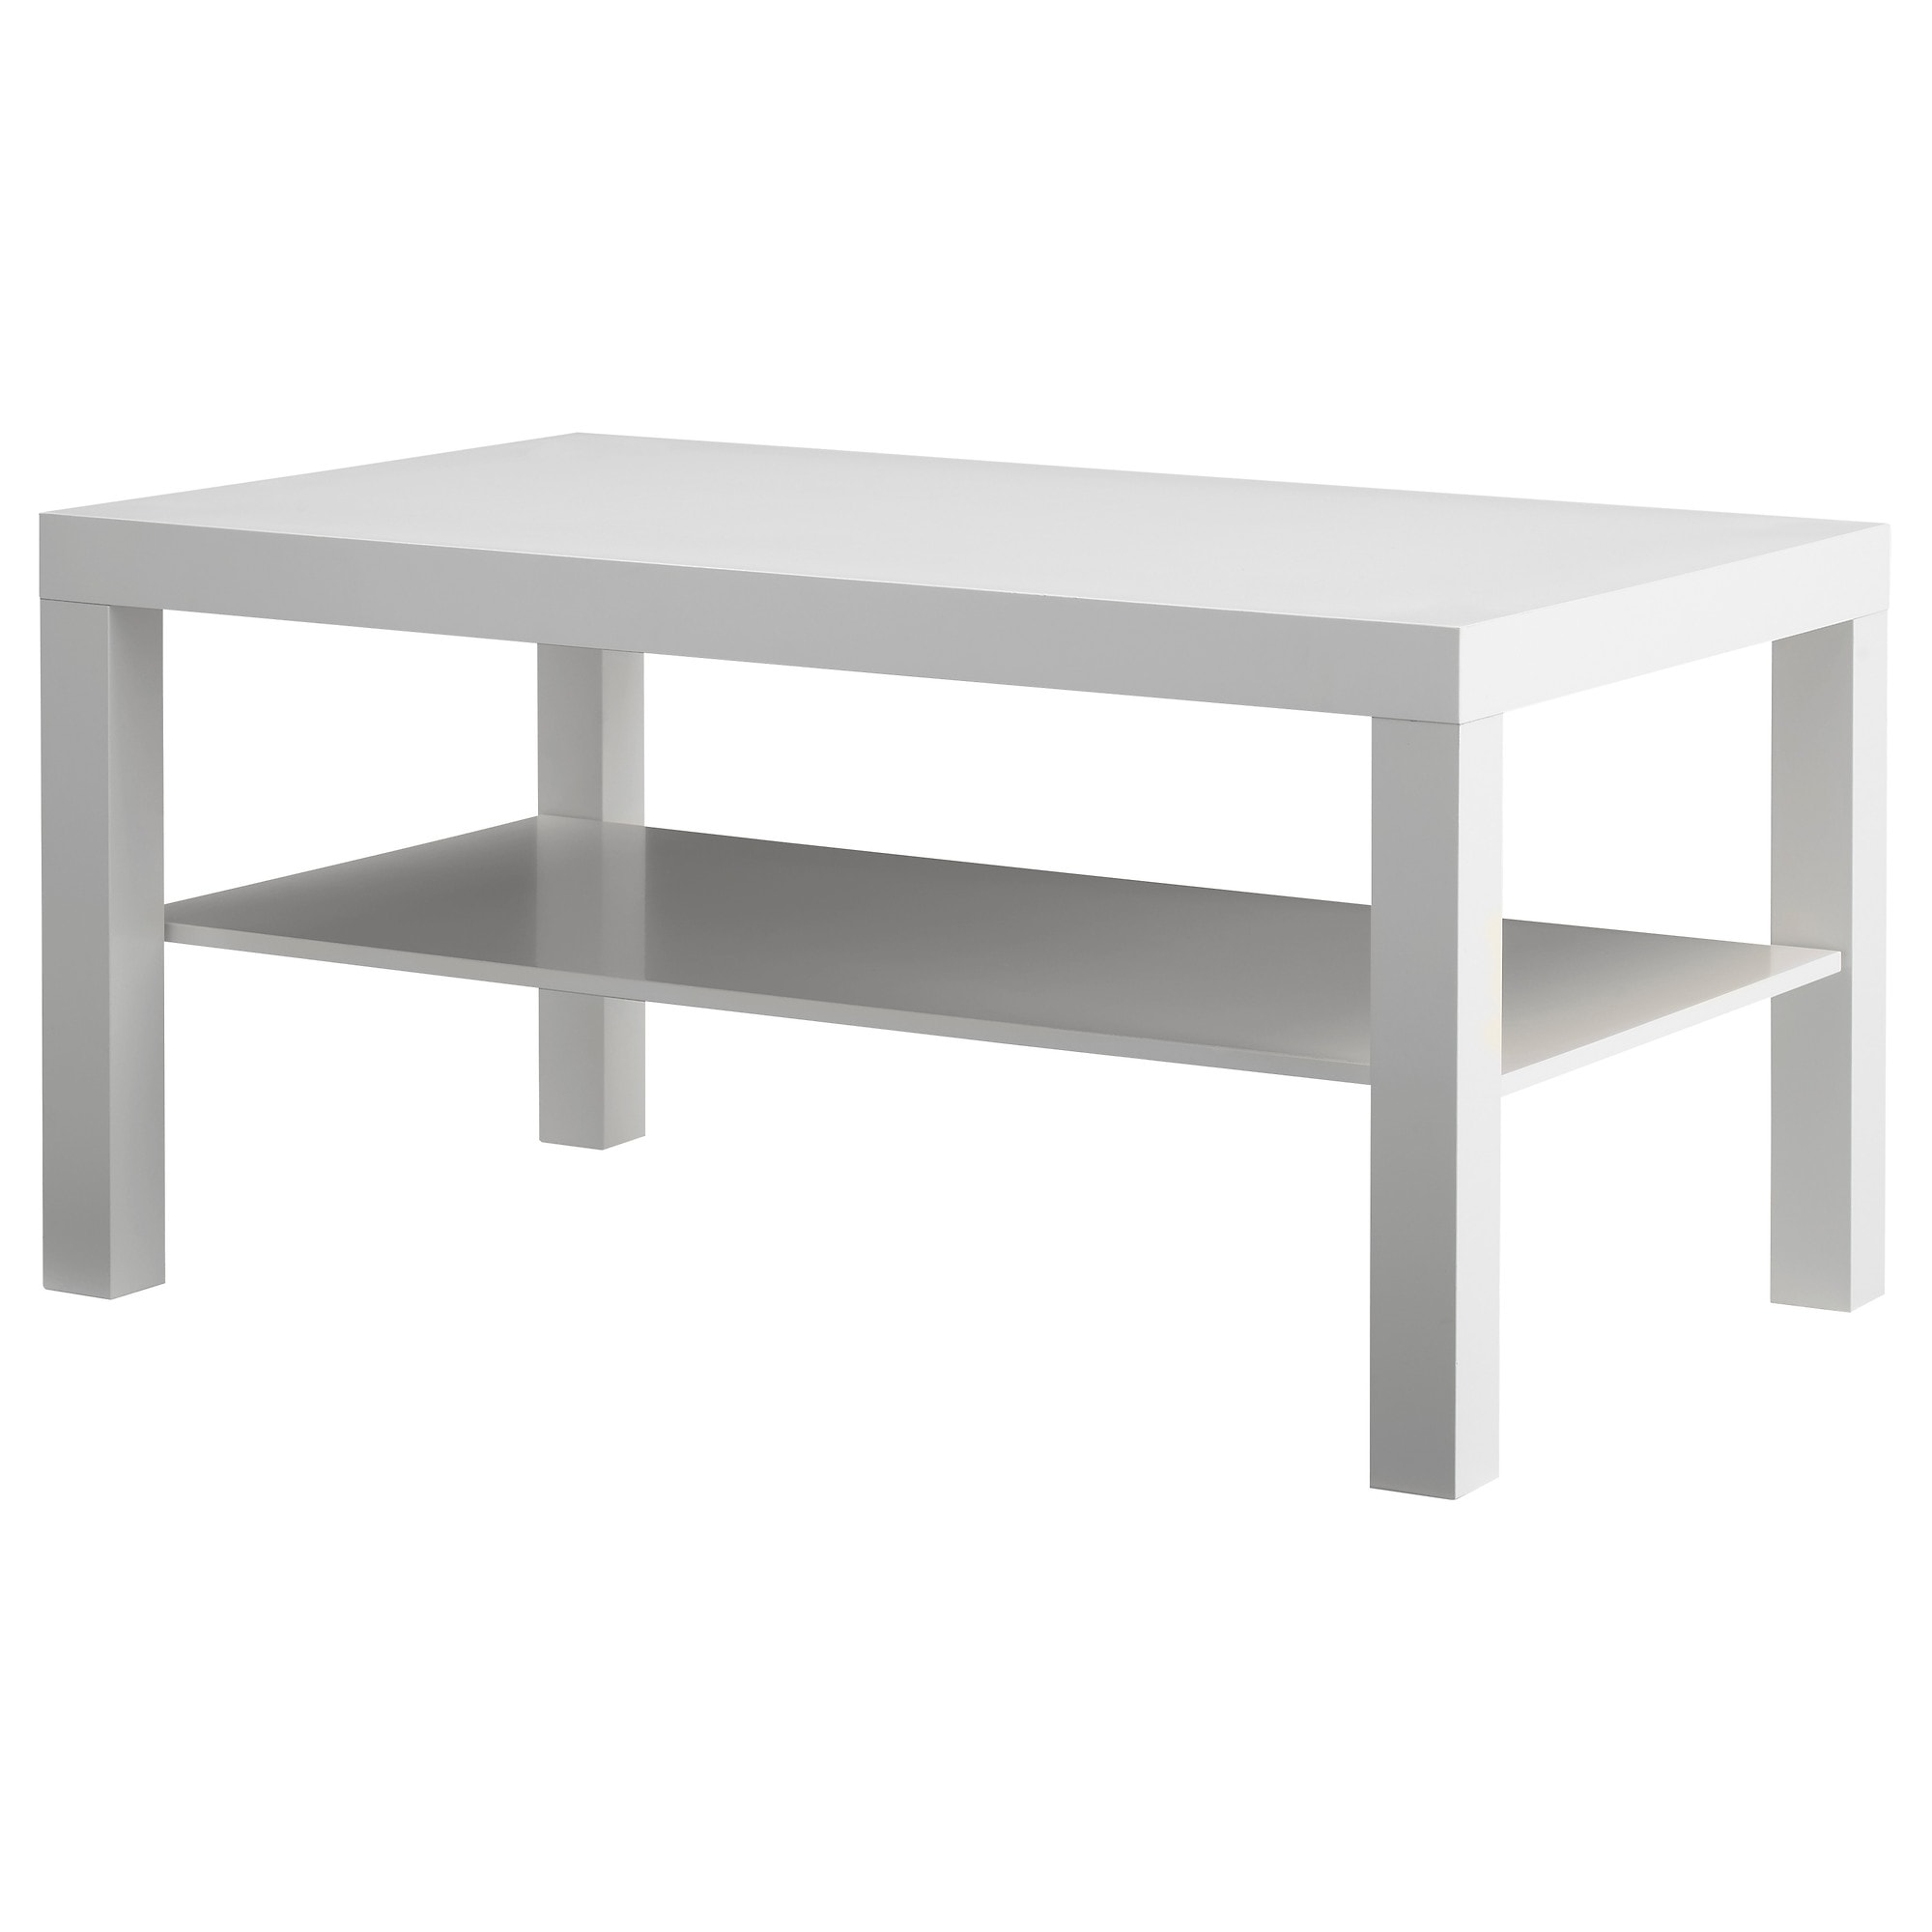 Ikea Coffee Table Fresh In Photos of Modern